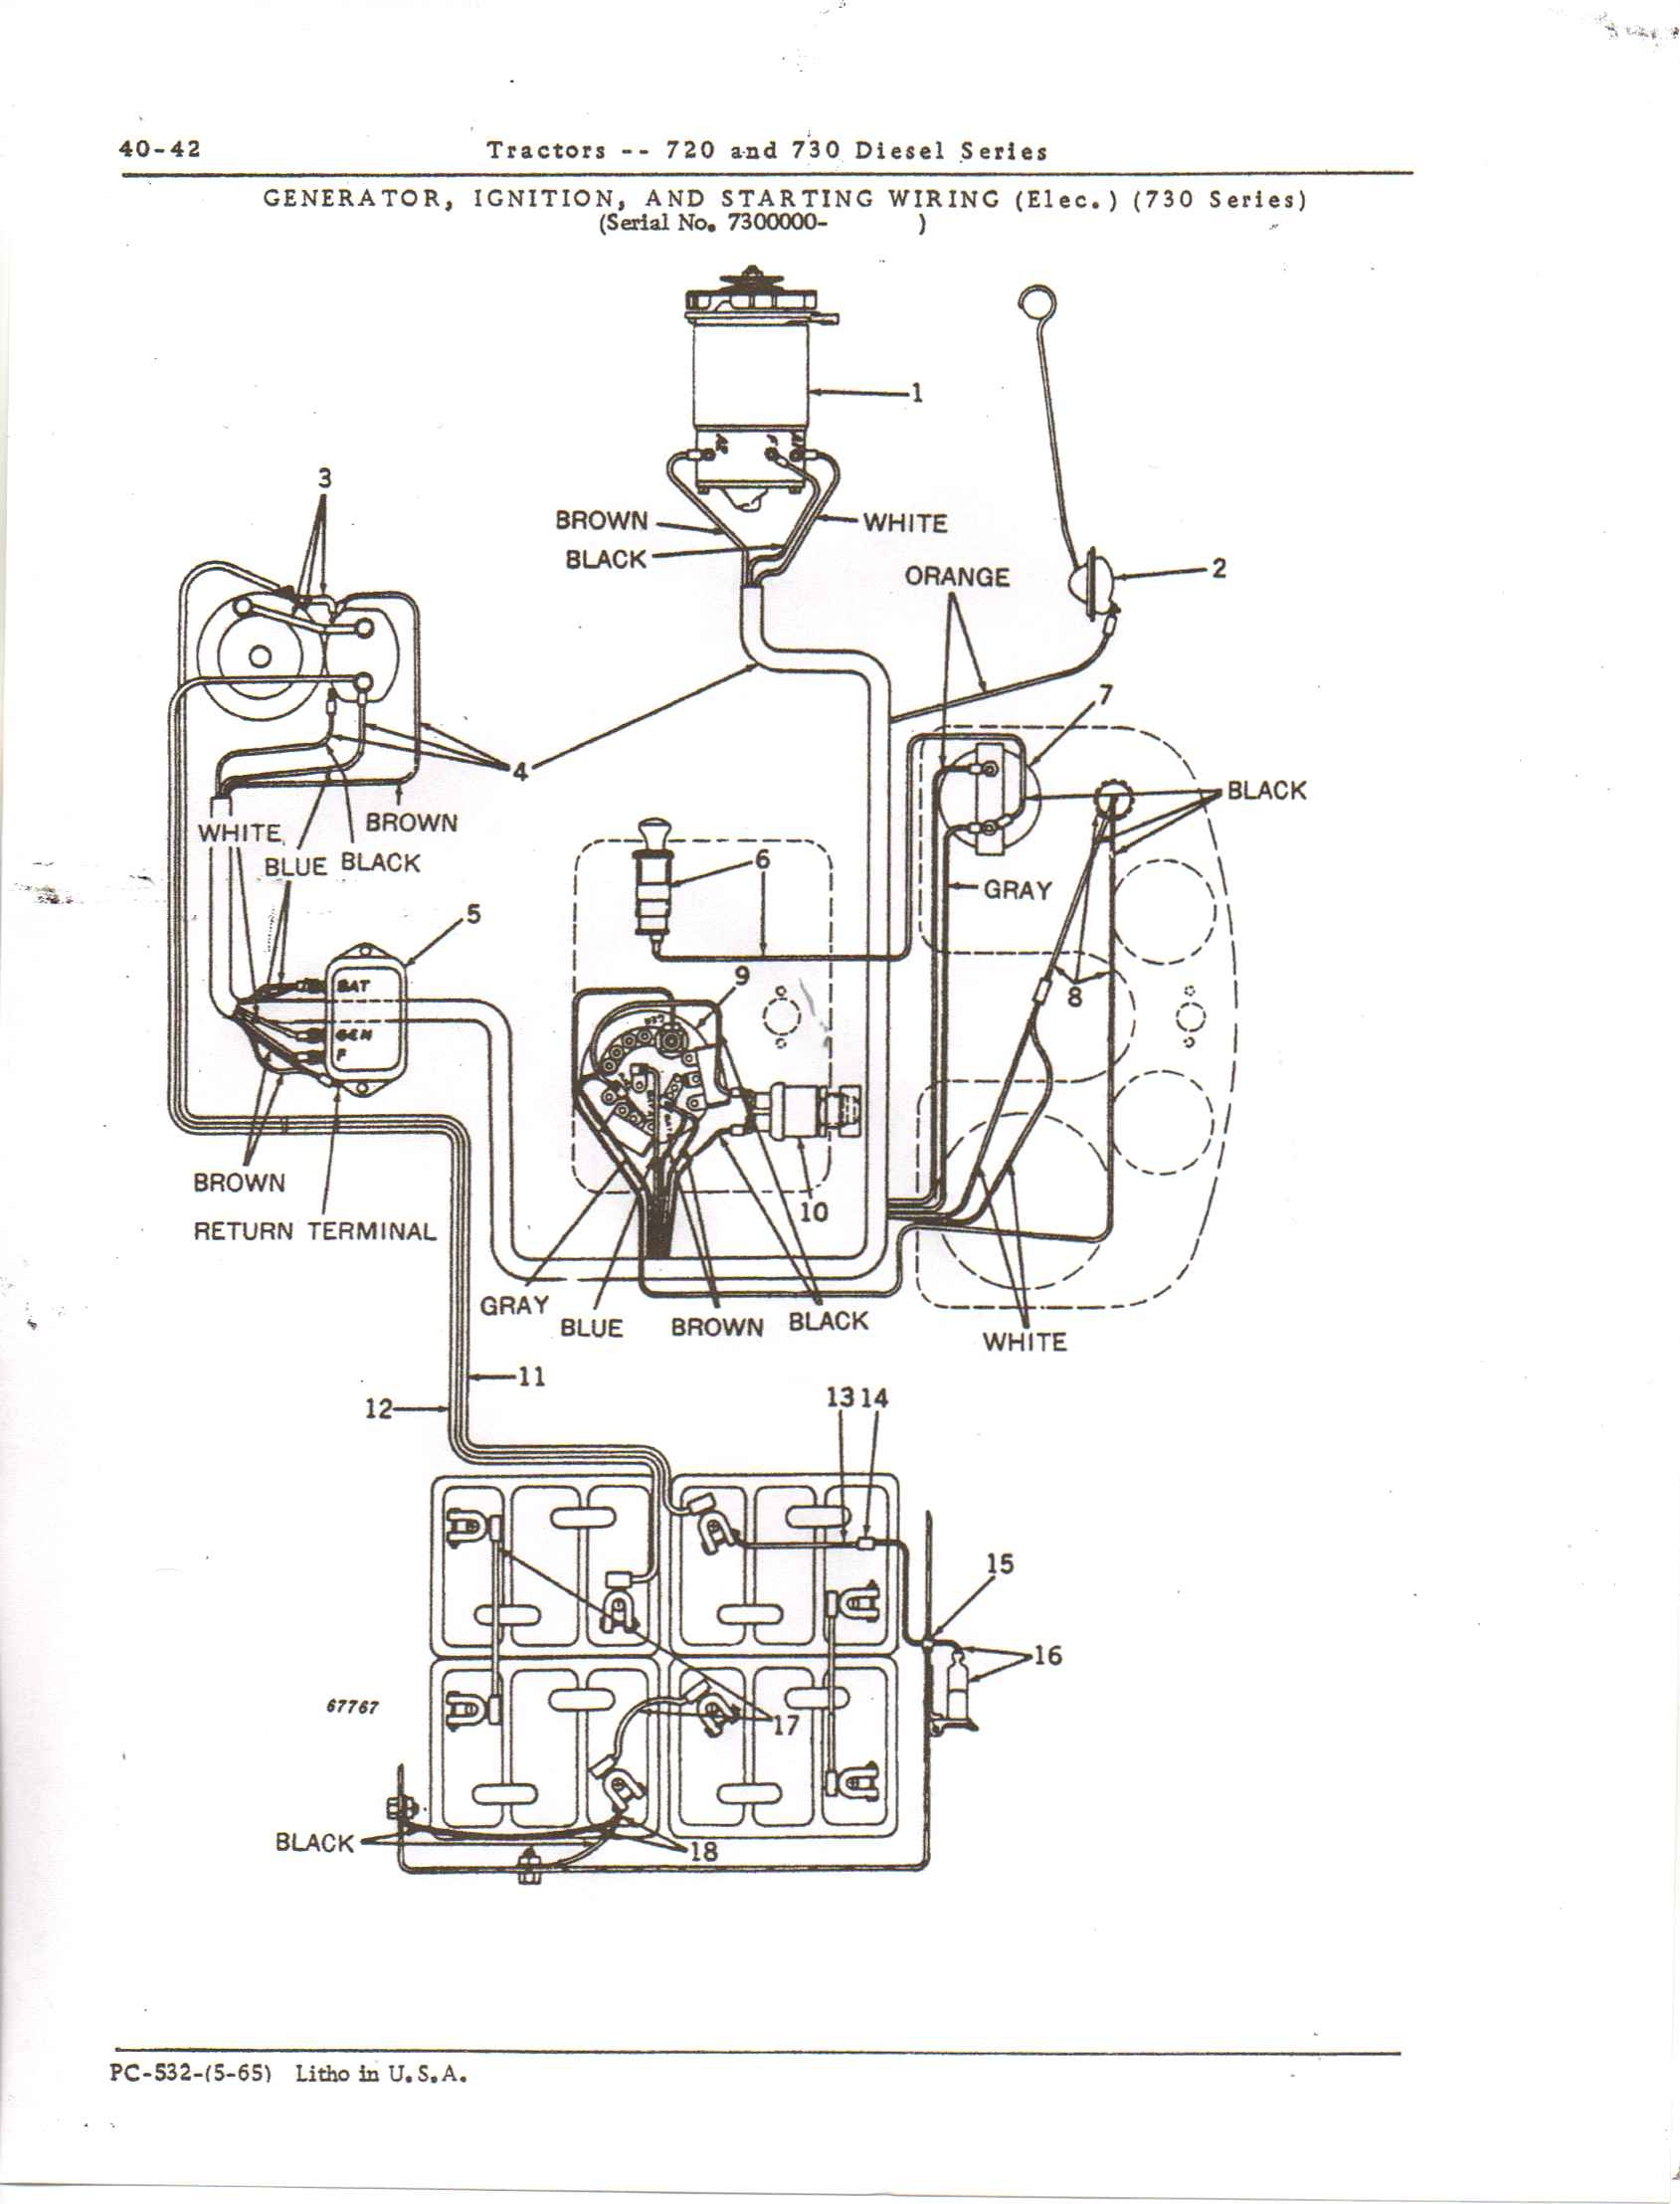 John Deere 420 Mower Wiring Diagram | Wiring Diagram on